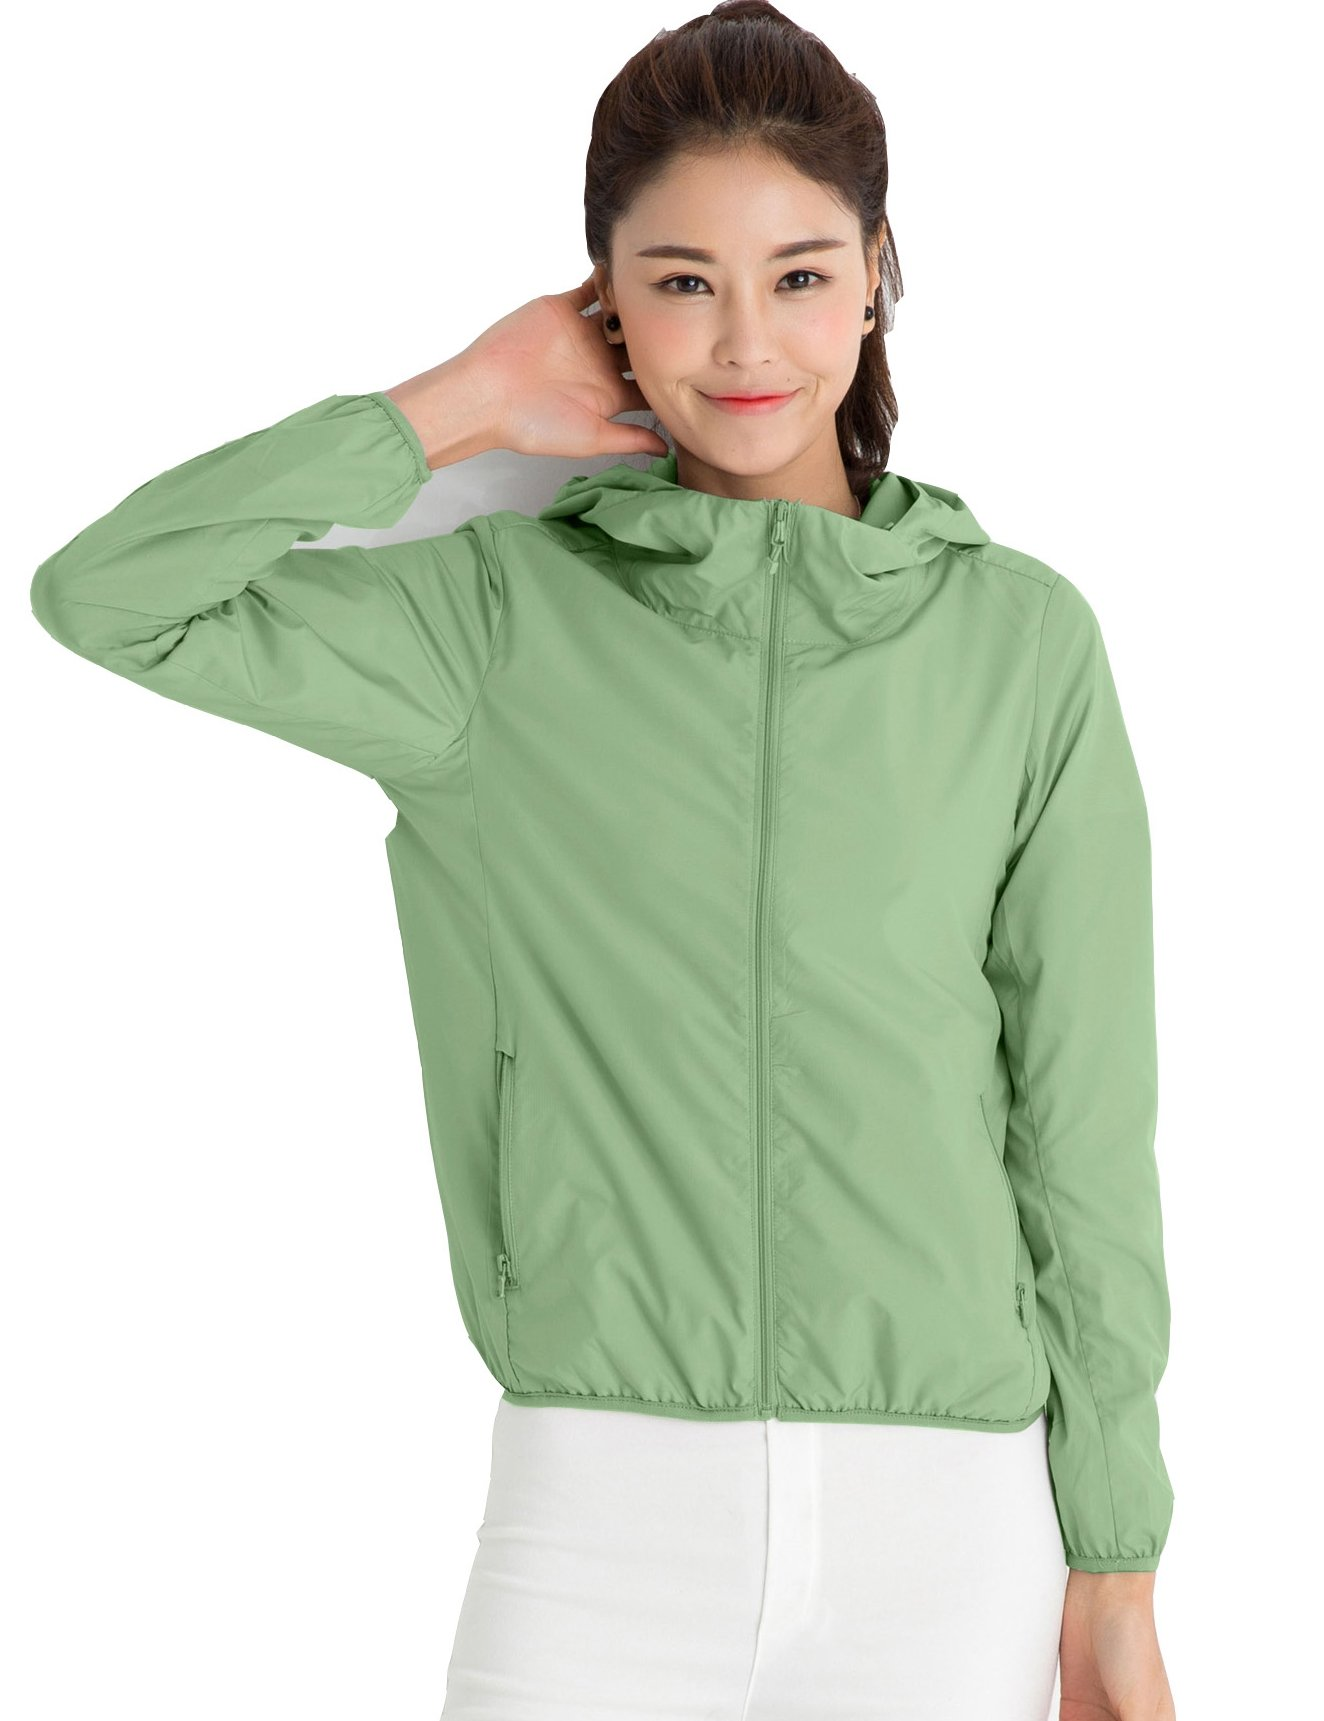 CHERRY CHICK Women's Ultralight Packable UV Protection Summer Jacket with Hood (US Small/Chinese L, Pea Green)